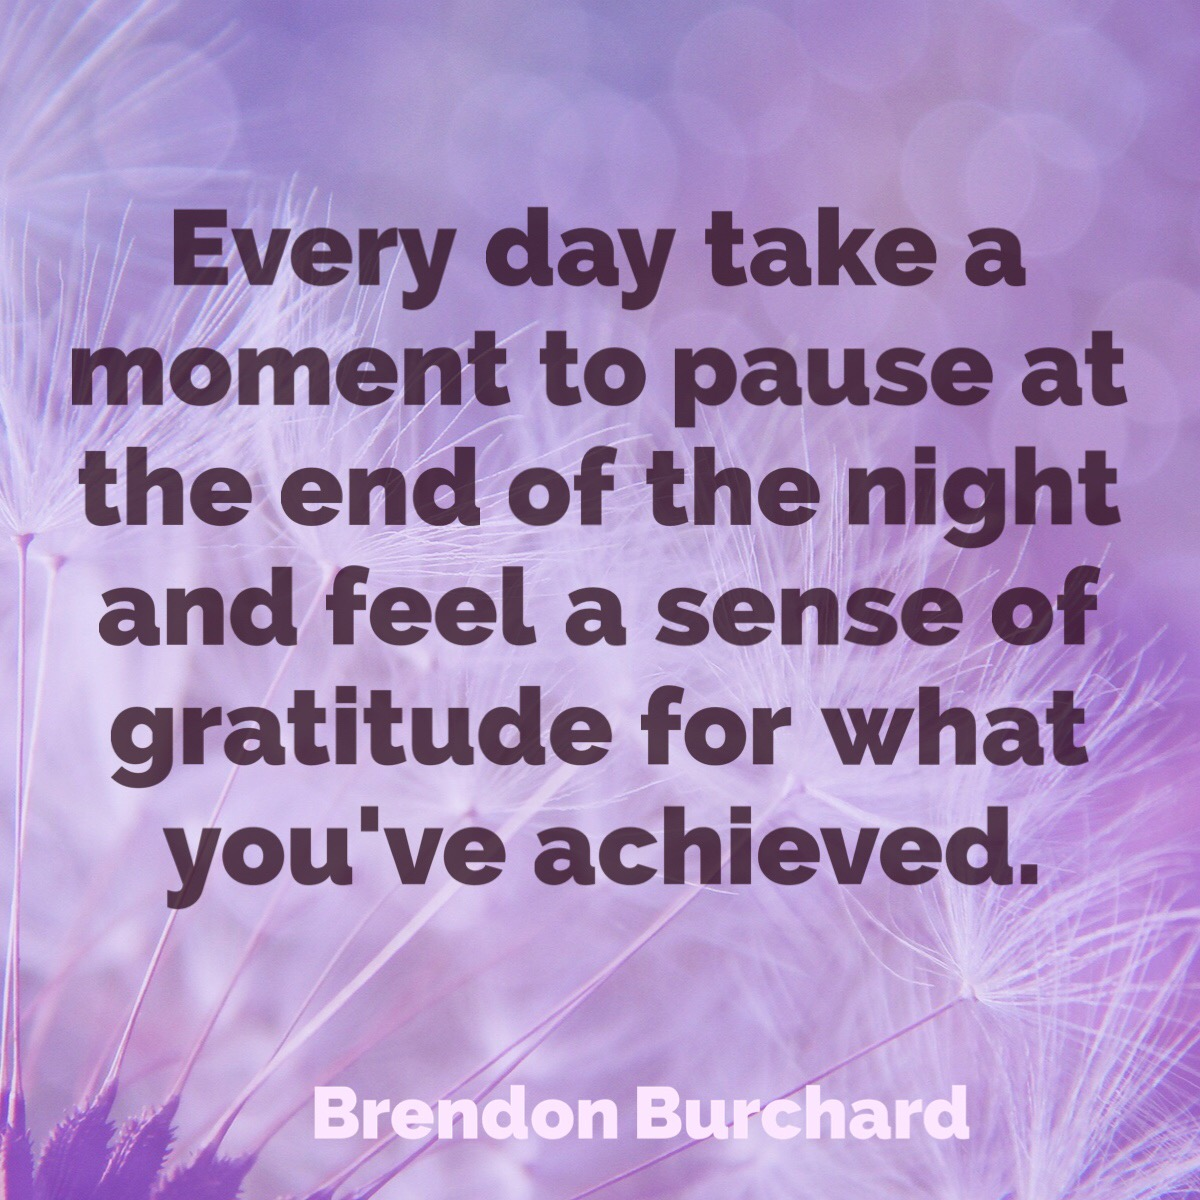 Brendon Burchard, Motivation Manifesto, The Charged Life, Be Grateful